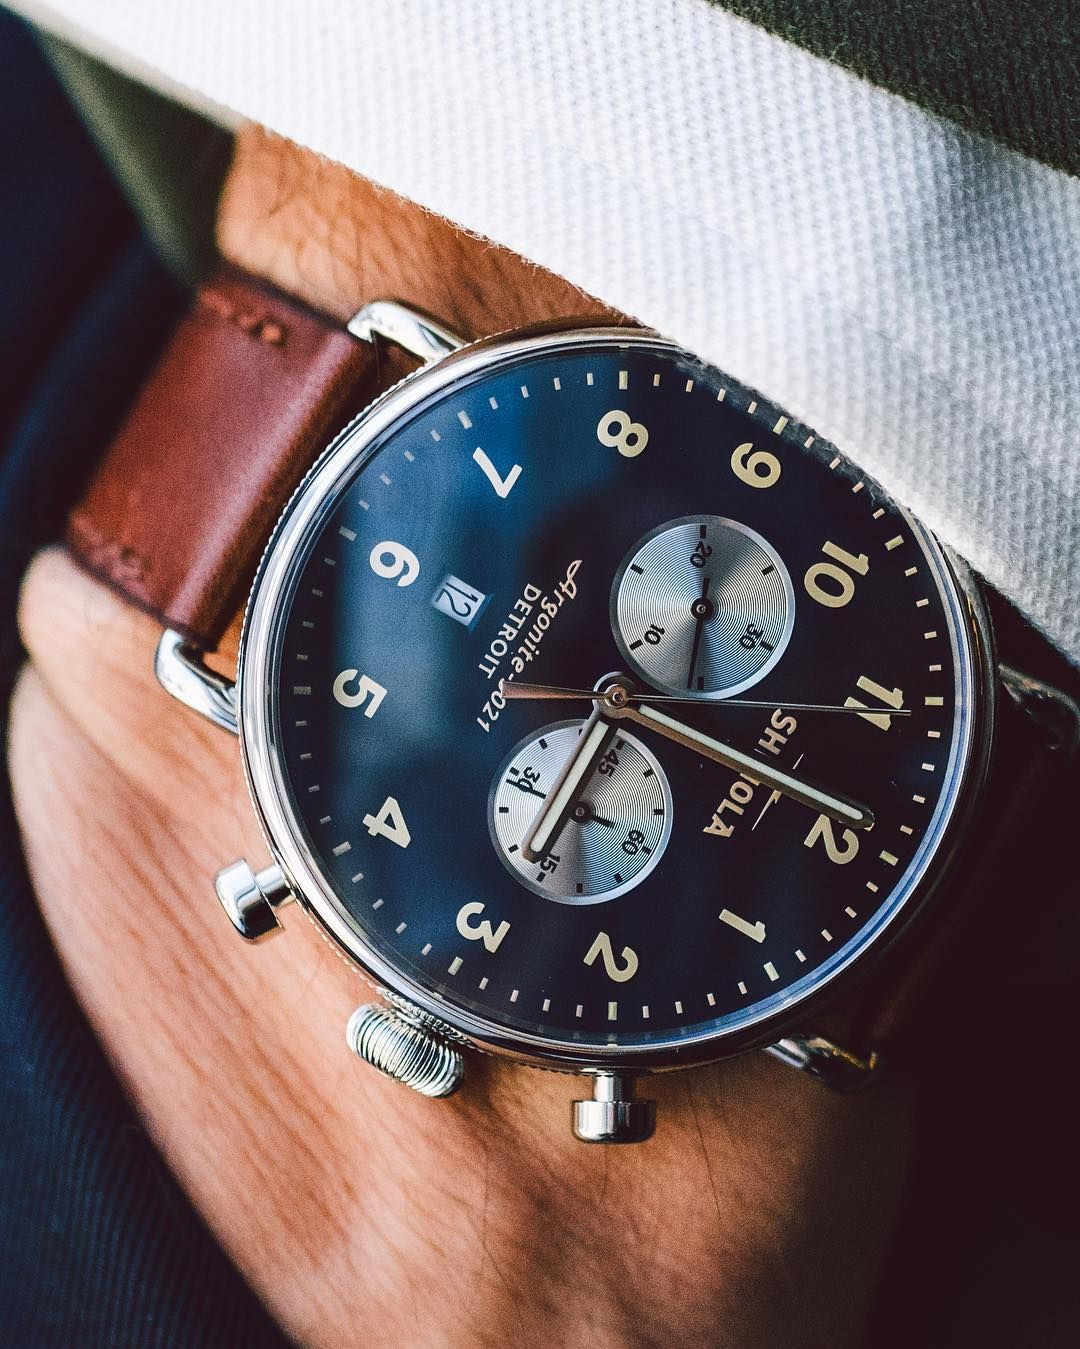 Shinola S Newest Watch Is Perfect For Guys Who Want Something Eye Catching But Not Too Complicated Check Out Mor Watches For Men Timex Watches Latest Watches